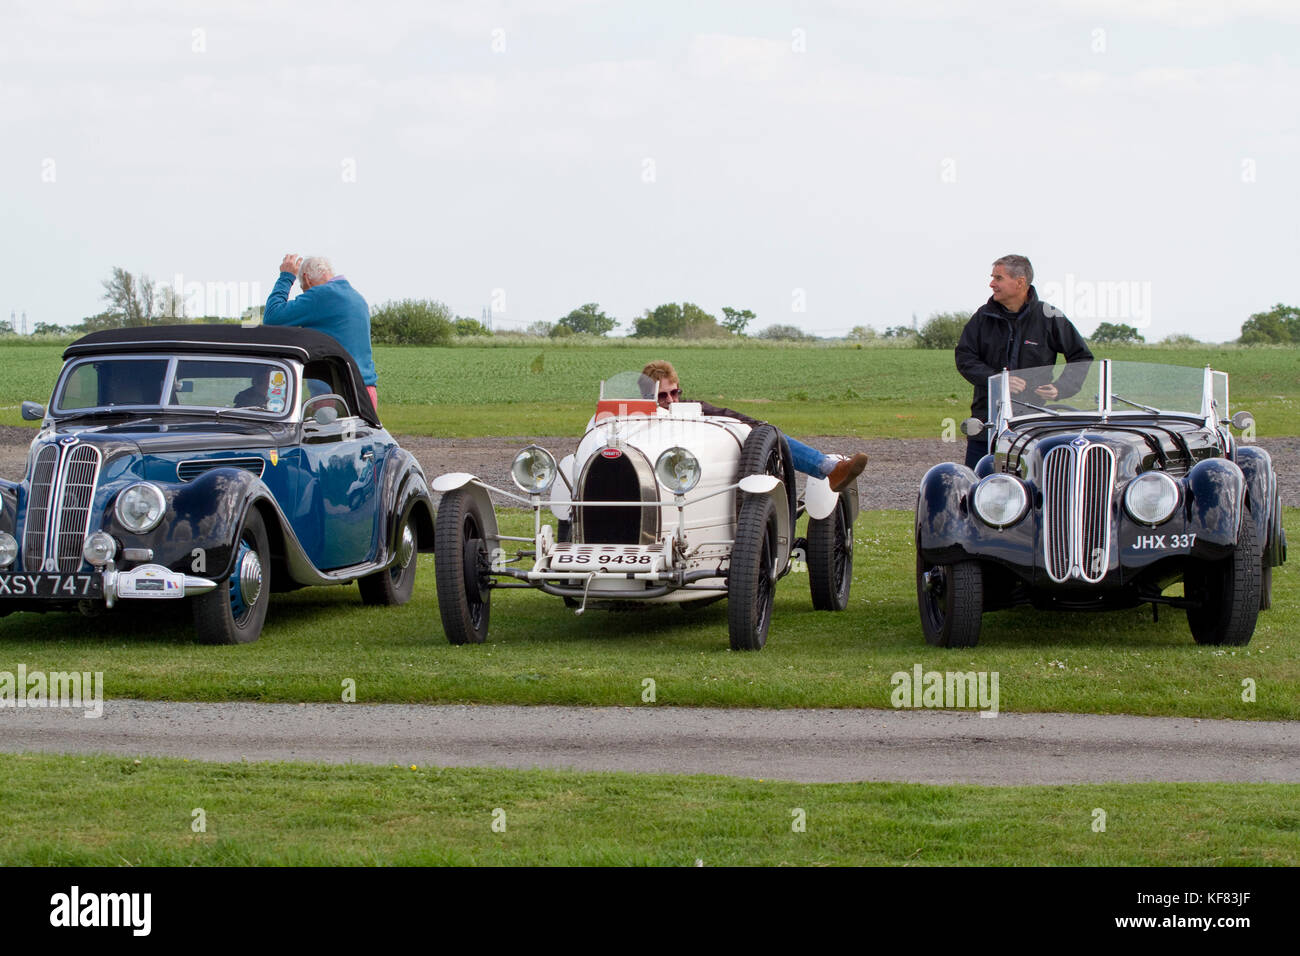 Drivers of two classic BMWs and a Bugatti meet on a club run - Stock Image